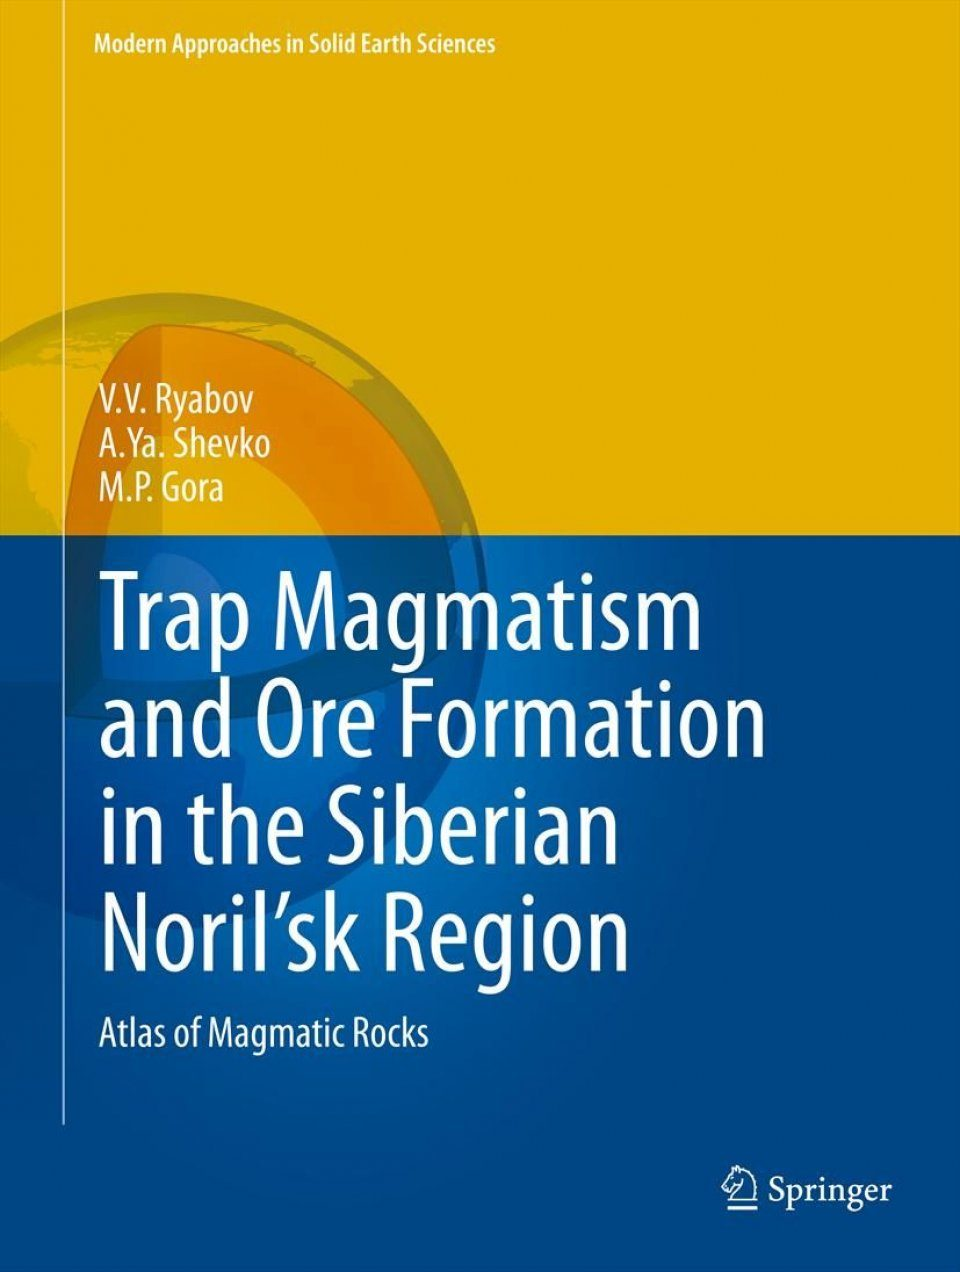 Trap Magmatism and Ore Formation in the Siberian Noril'sk Region (2-Volume Set)